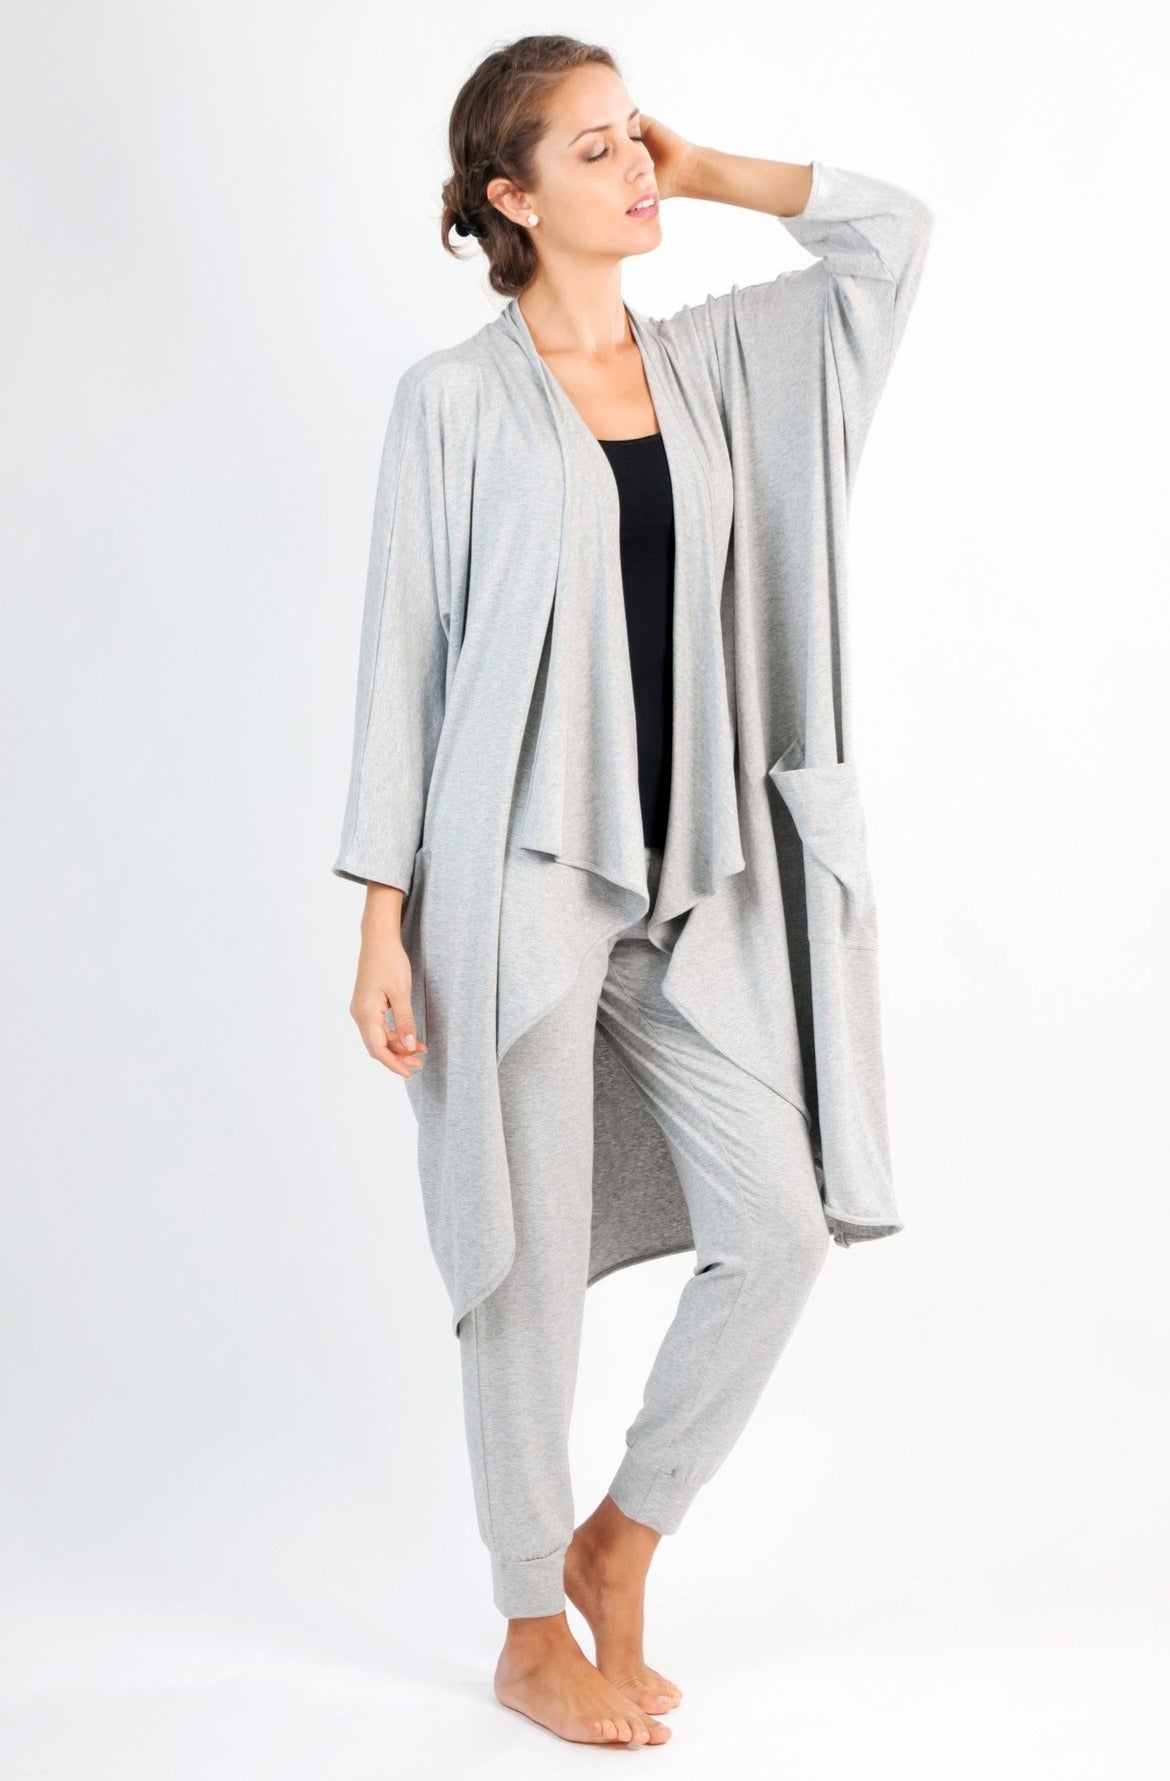 Laguna Long Cardigan Jacket - Sales Rack